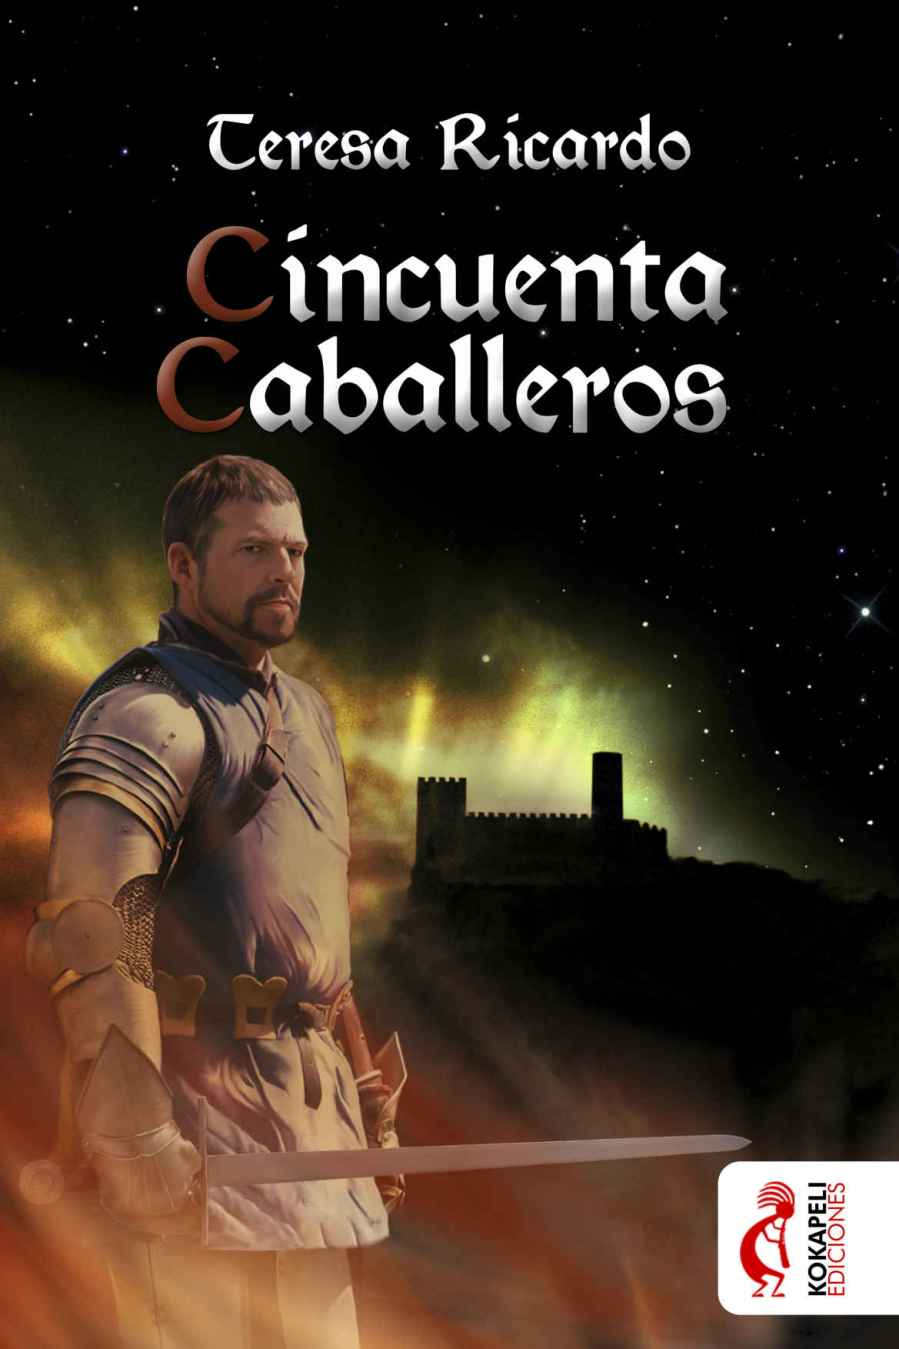 Cincuenta caballeros Book Cover